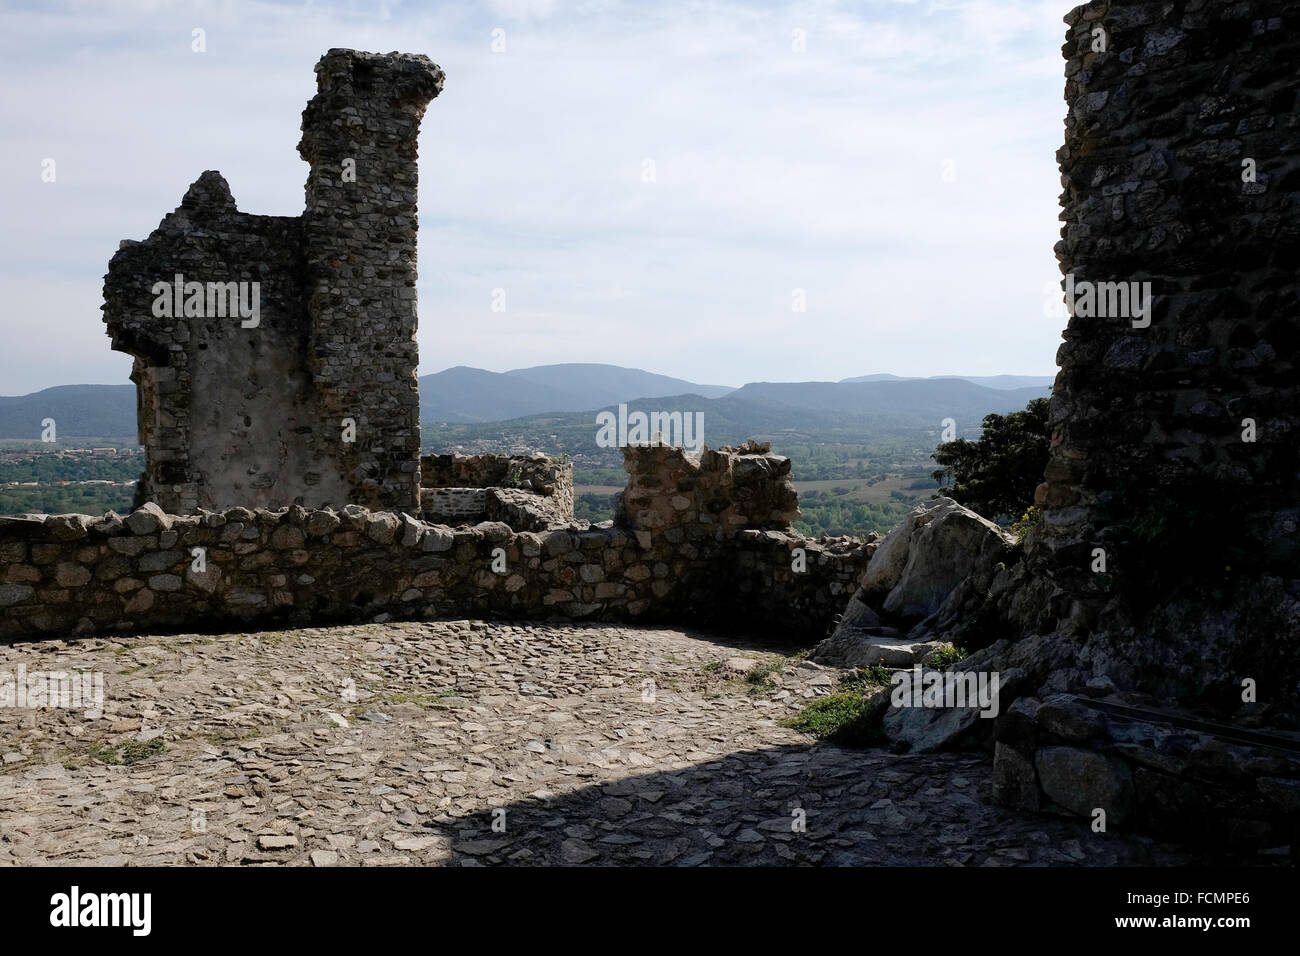 The ruined castle at Grimaud. - Stock Image